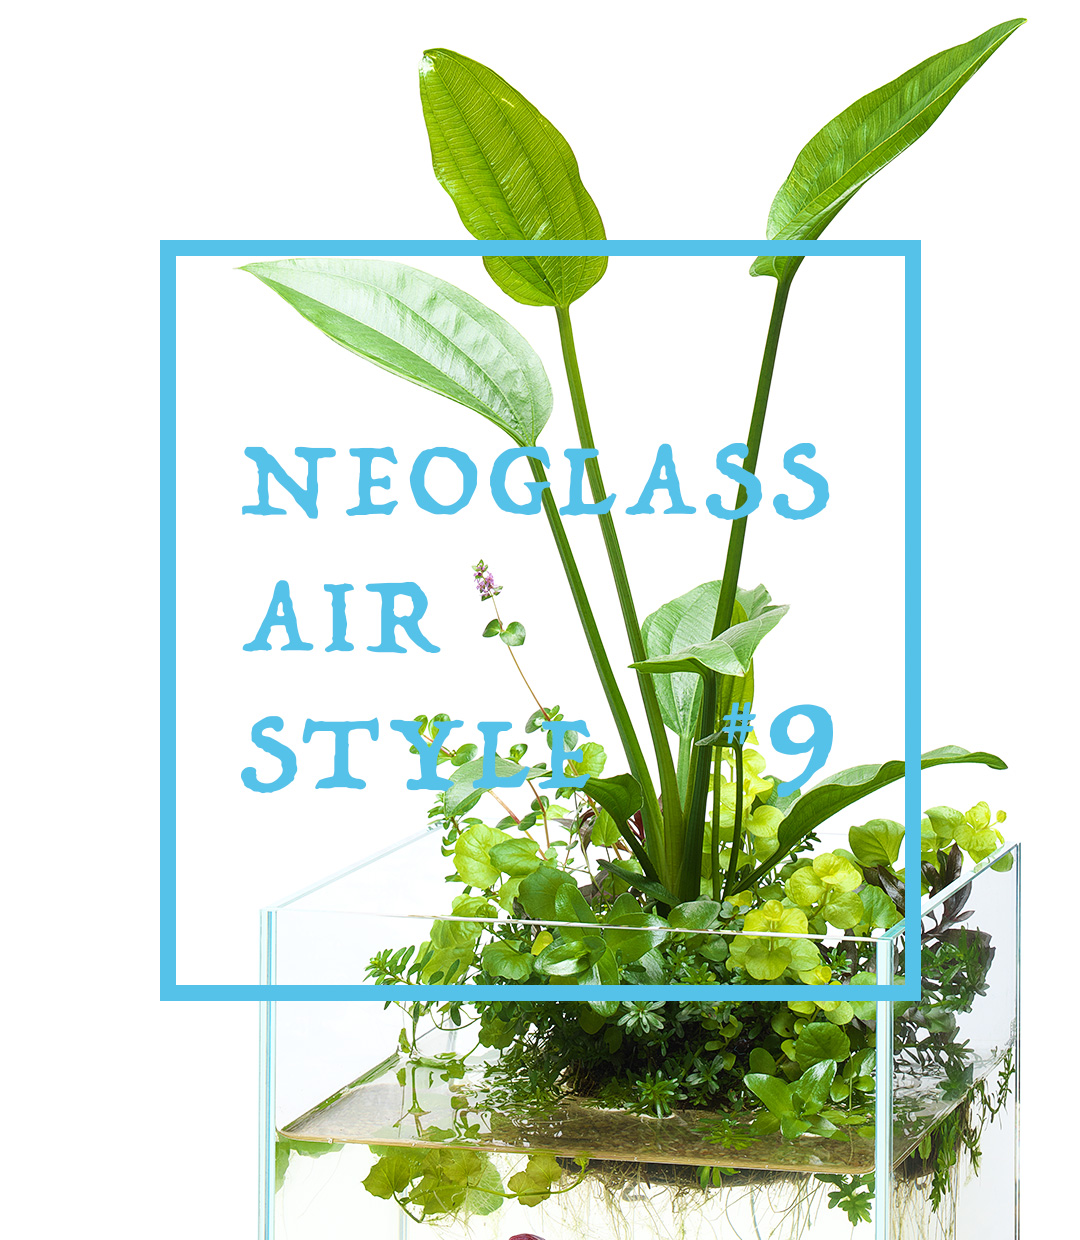 NEOGLASS AIR STYLE #9